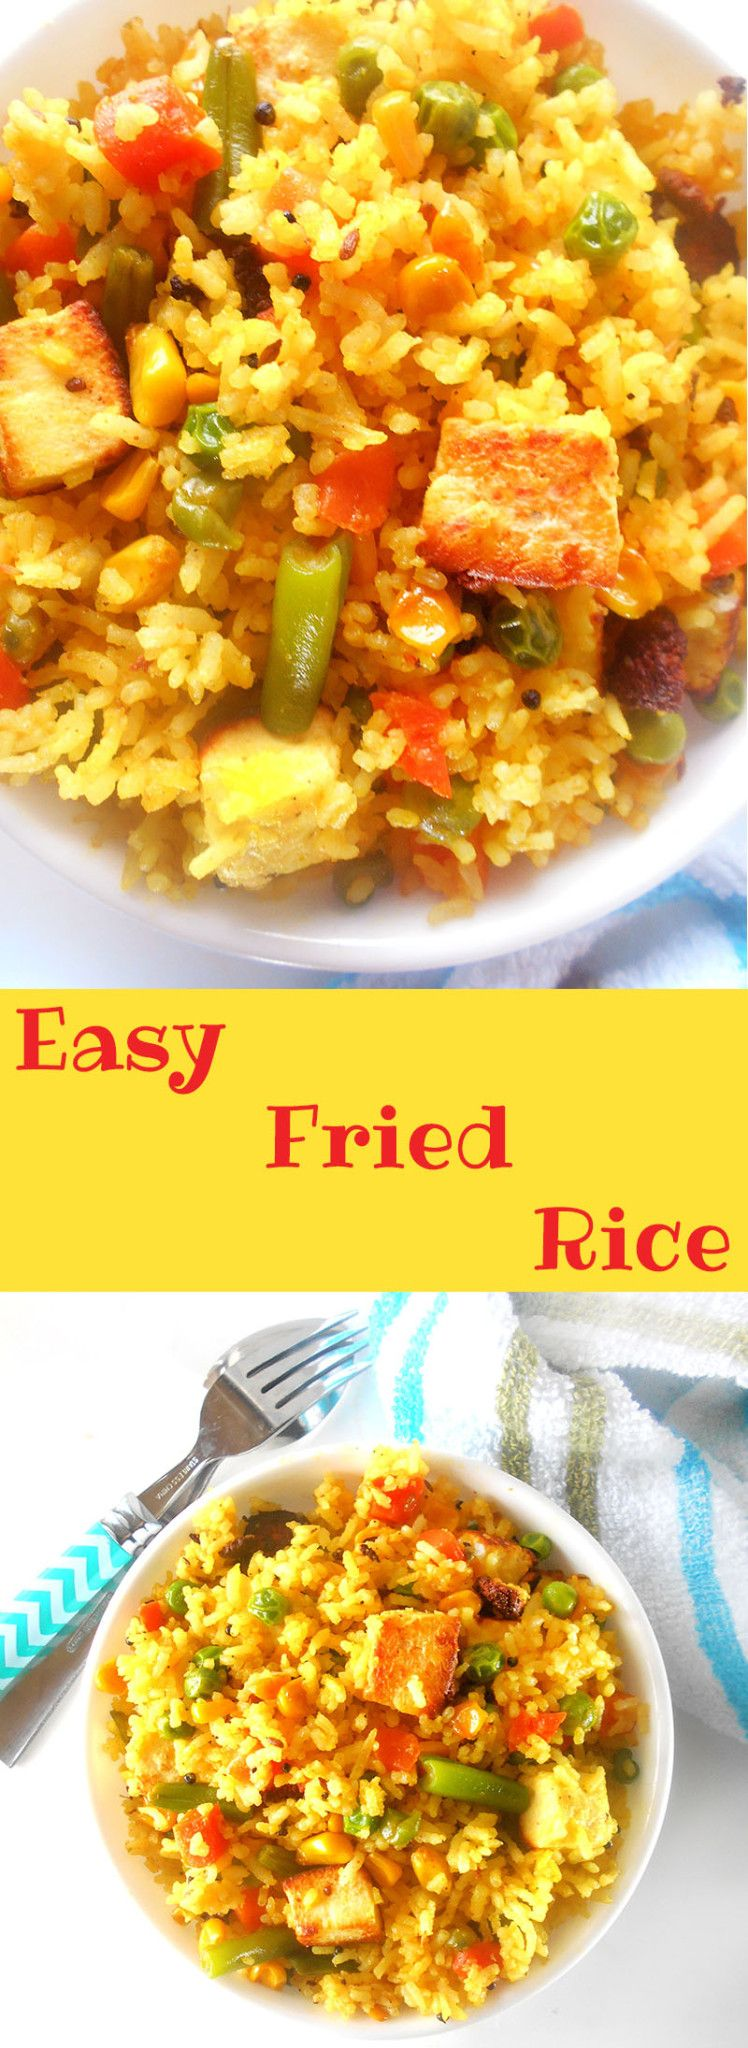 How to make fried rice (vegan version): This is the easiest way to make vegetarian fried rice. Perfect for weeknight family meals. I added tofu and made it spicy